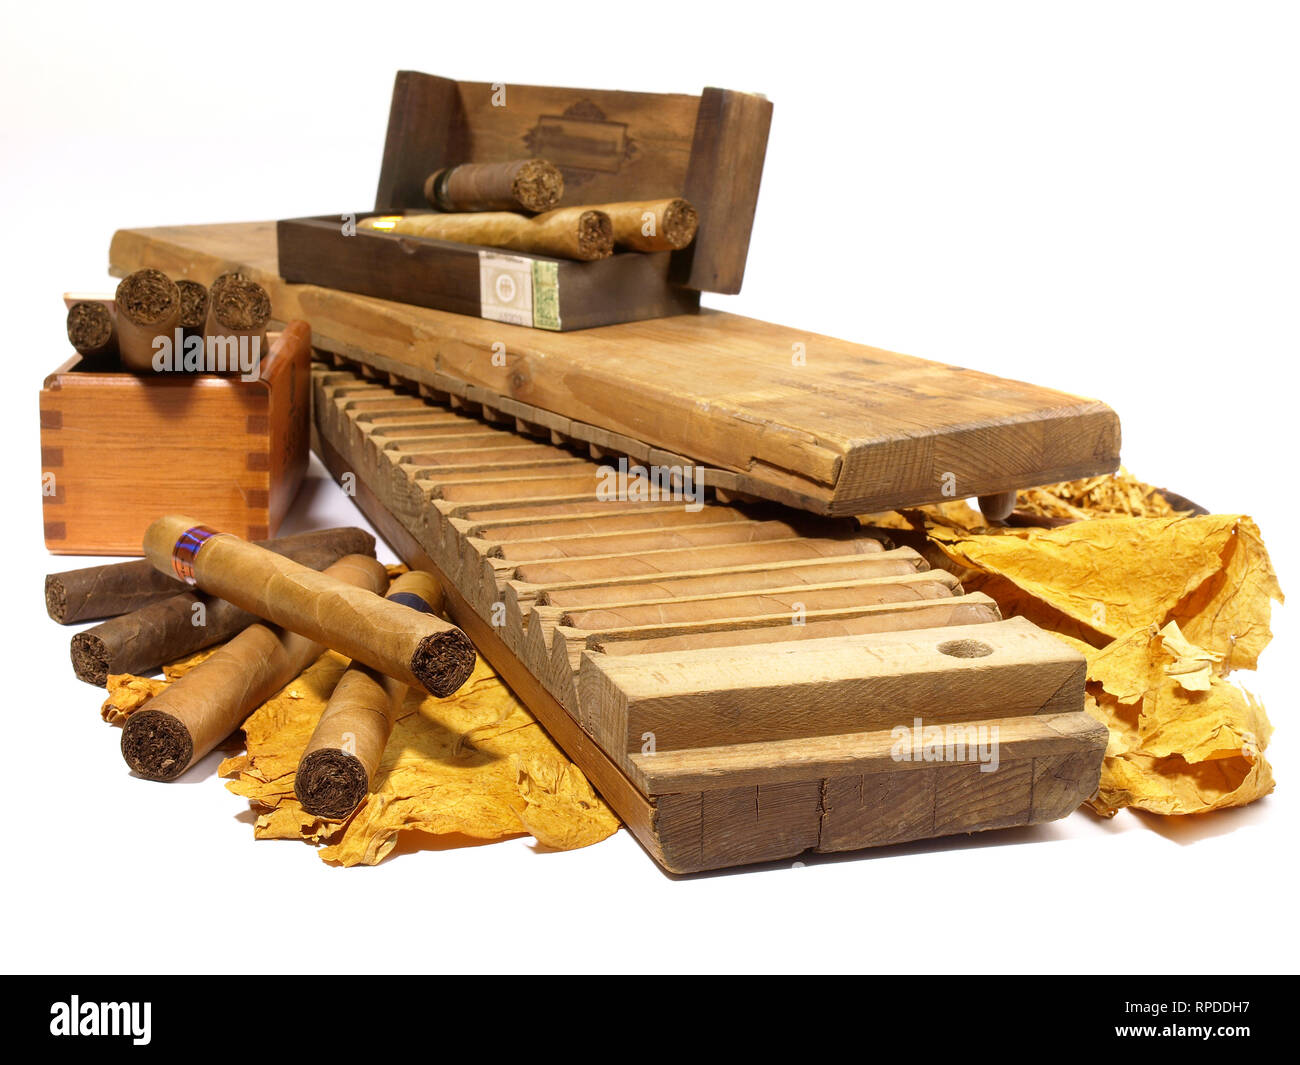 Cigars with Press and Tobacco Leaves on white Background - Stock Image